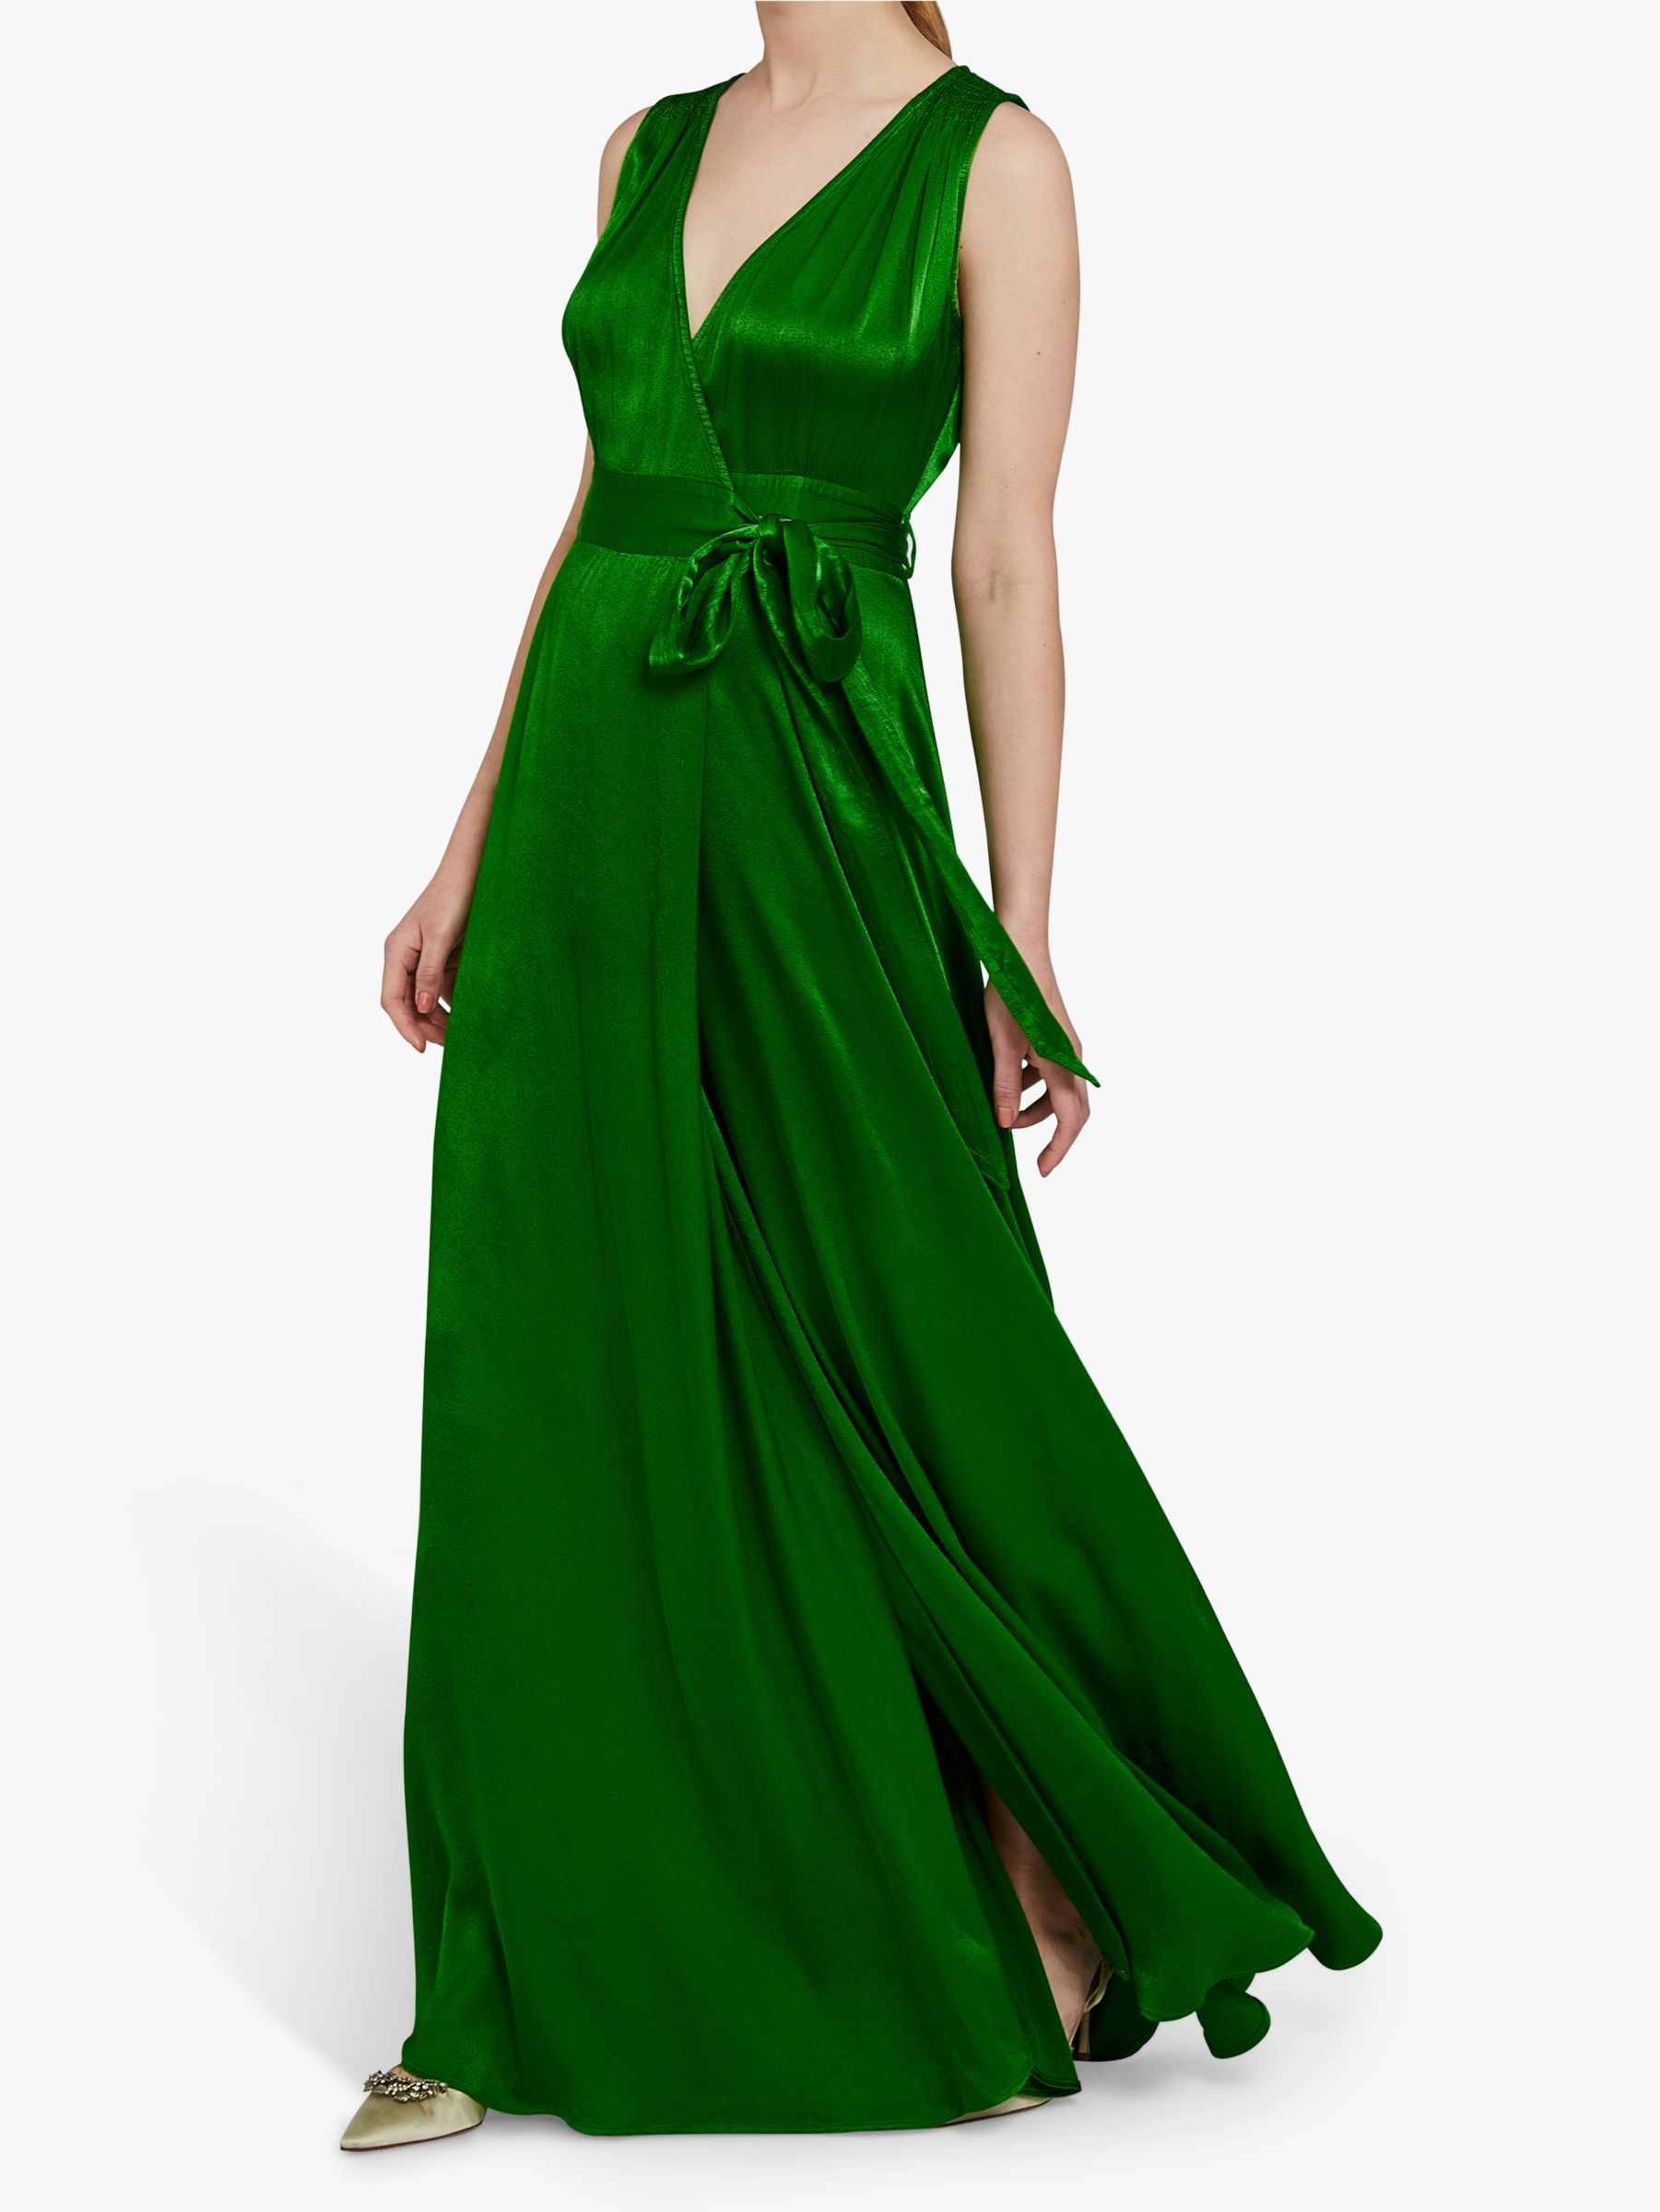 Ghost Lola Satin Wrap Maxi Dress | Maxi wrap dress, Dresses